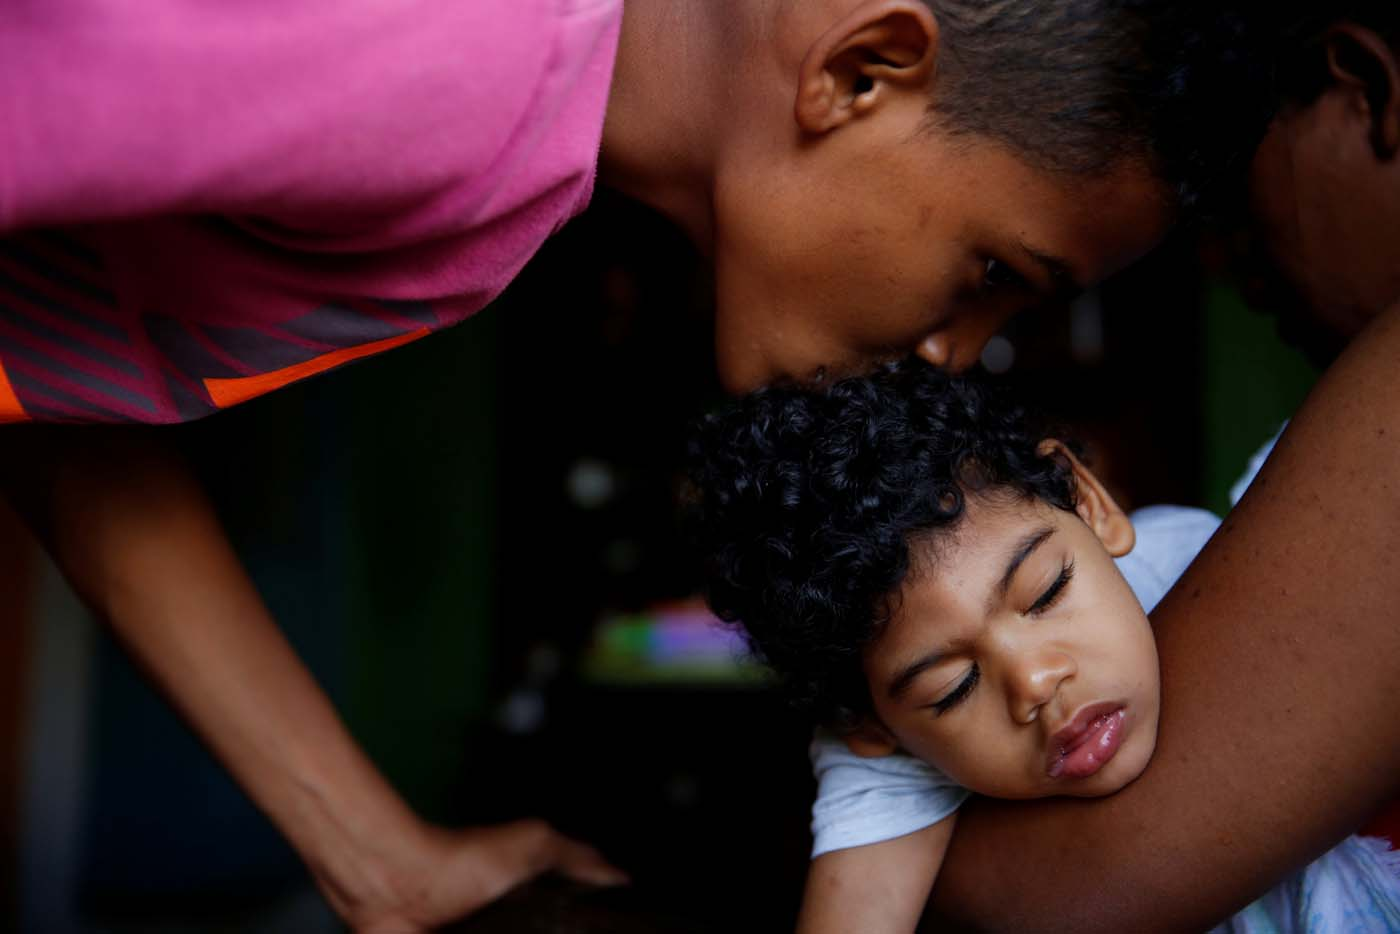 "Isai Rocha (L), 14, kisses his brother Kaleth Heredia, 2, neurological patient being treated with anticonvulsants, before going out, at their house in Caracas, Venezuela January 31, 2017. REUTERS/Carlos Garcia Rawlins    SEARCH ""EPILEPSY CARACAS"" FOR THIS STORY. SEARCH ""WIDER IMAGE"" FOR ALL STORIES."